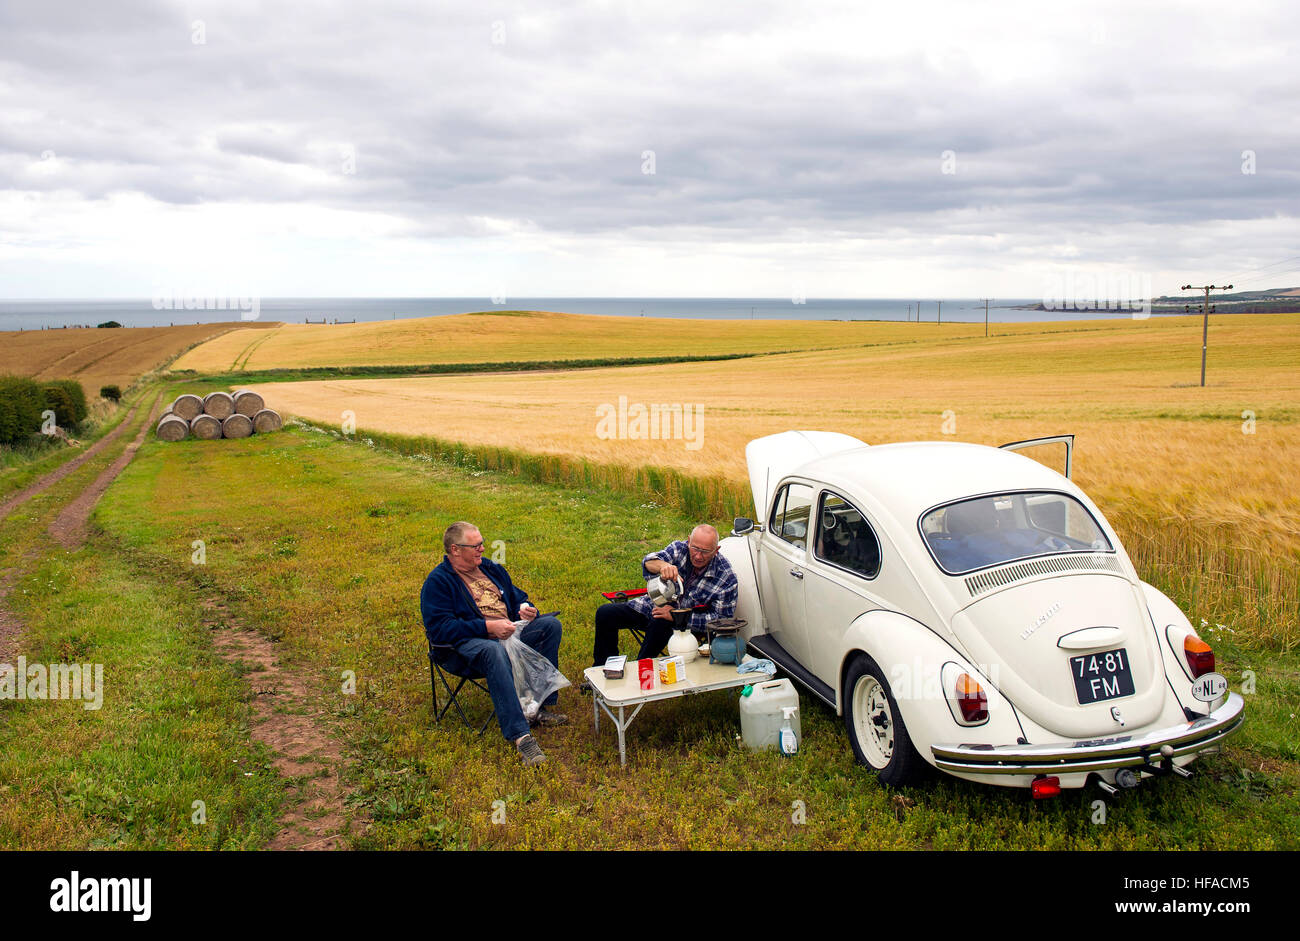 Two Dutch tourists have a picnic beside their VW beetle in a field near St Abbs, Berwickshire, Scottish Borders, - Stock Image